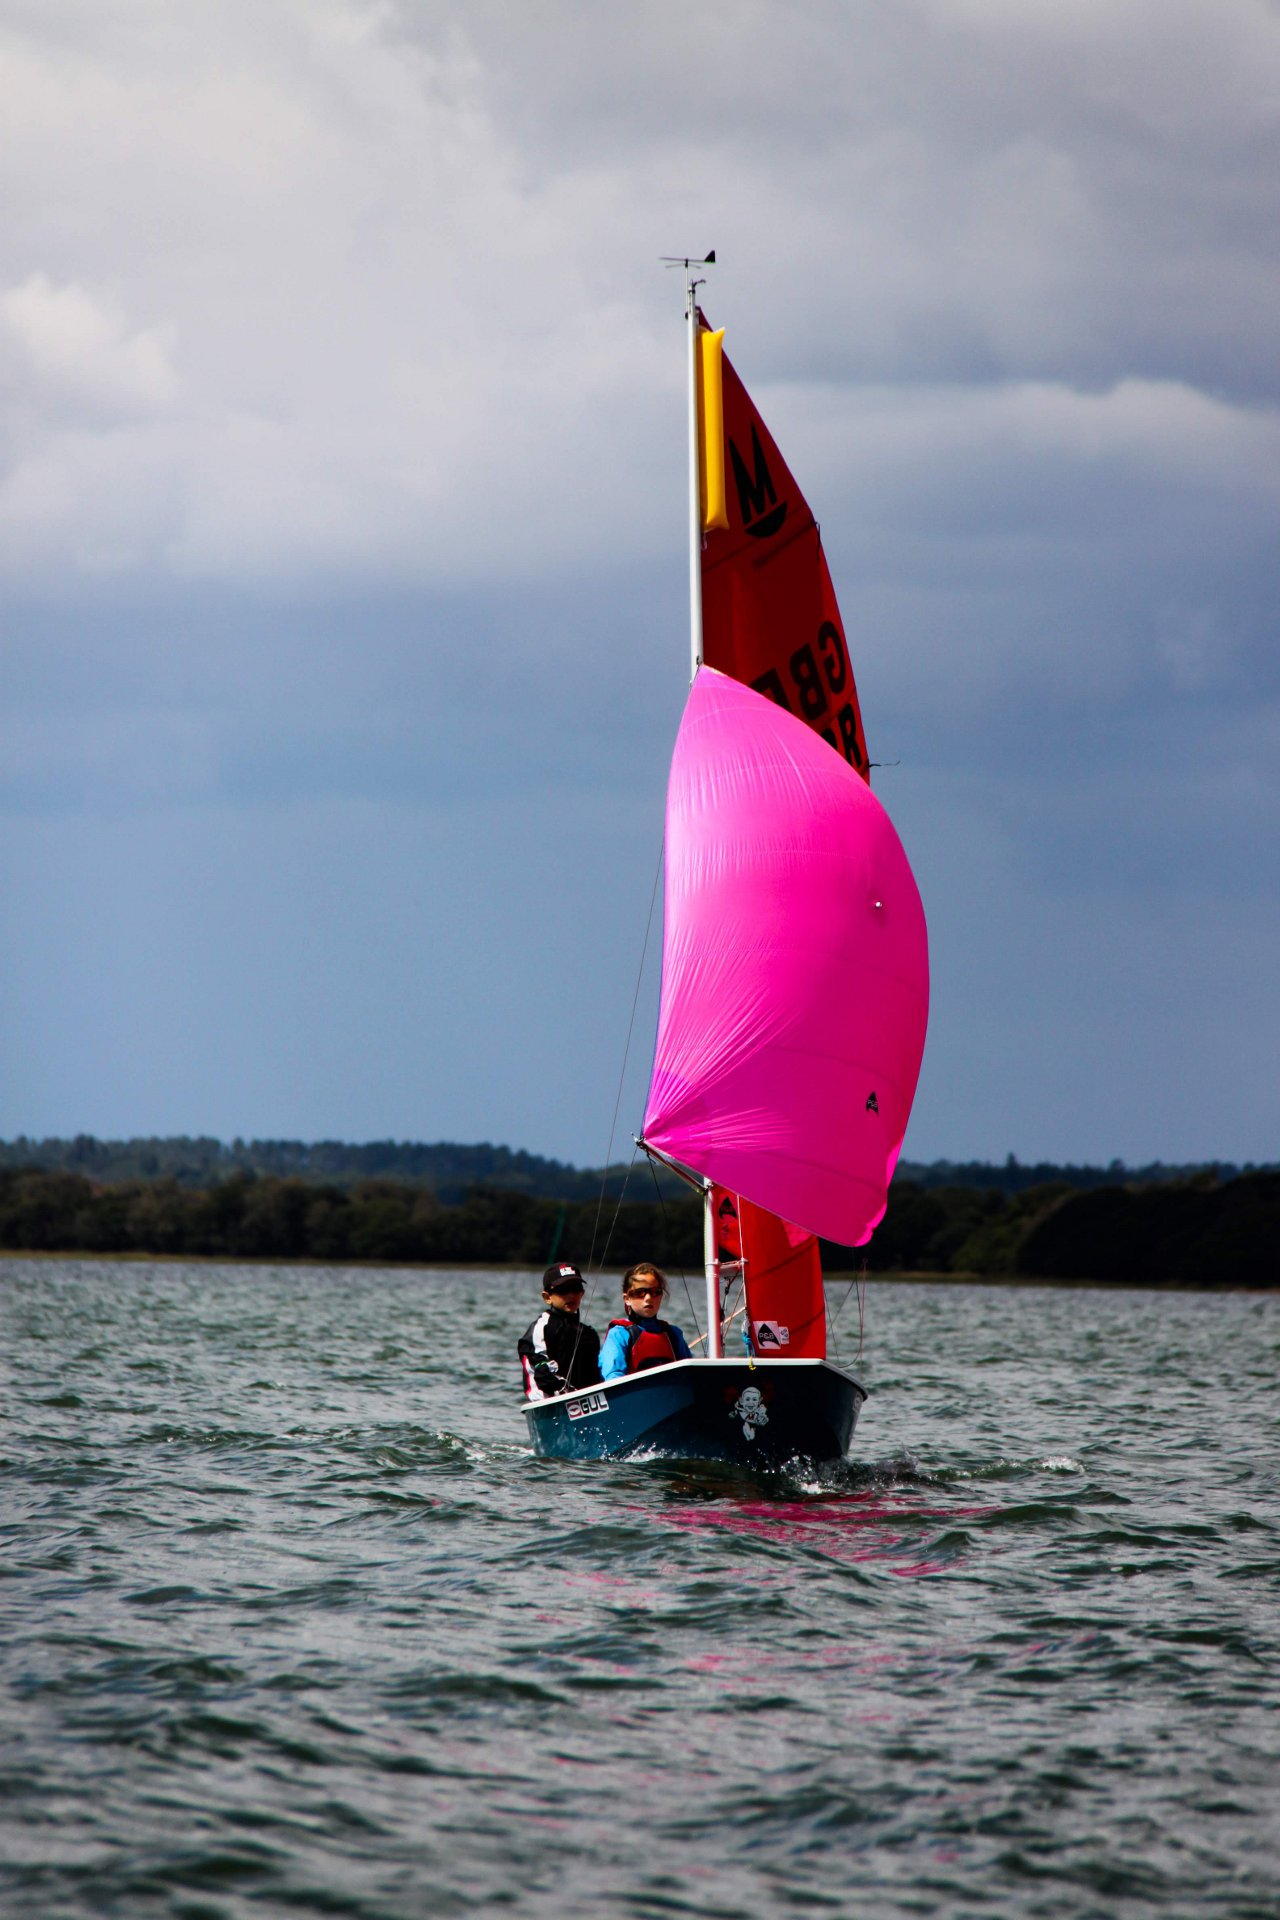 A Mirror racing with spinnaker set sailing towards the camera